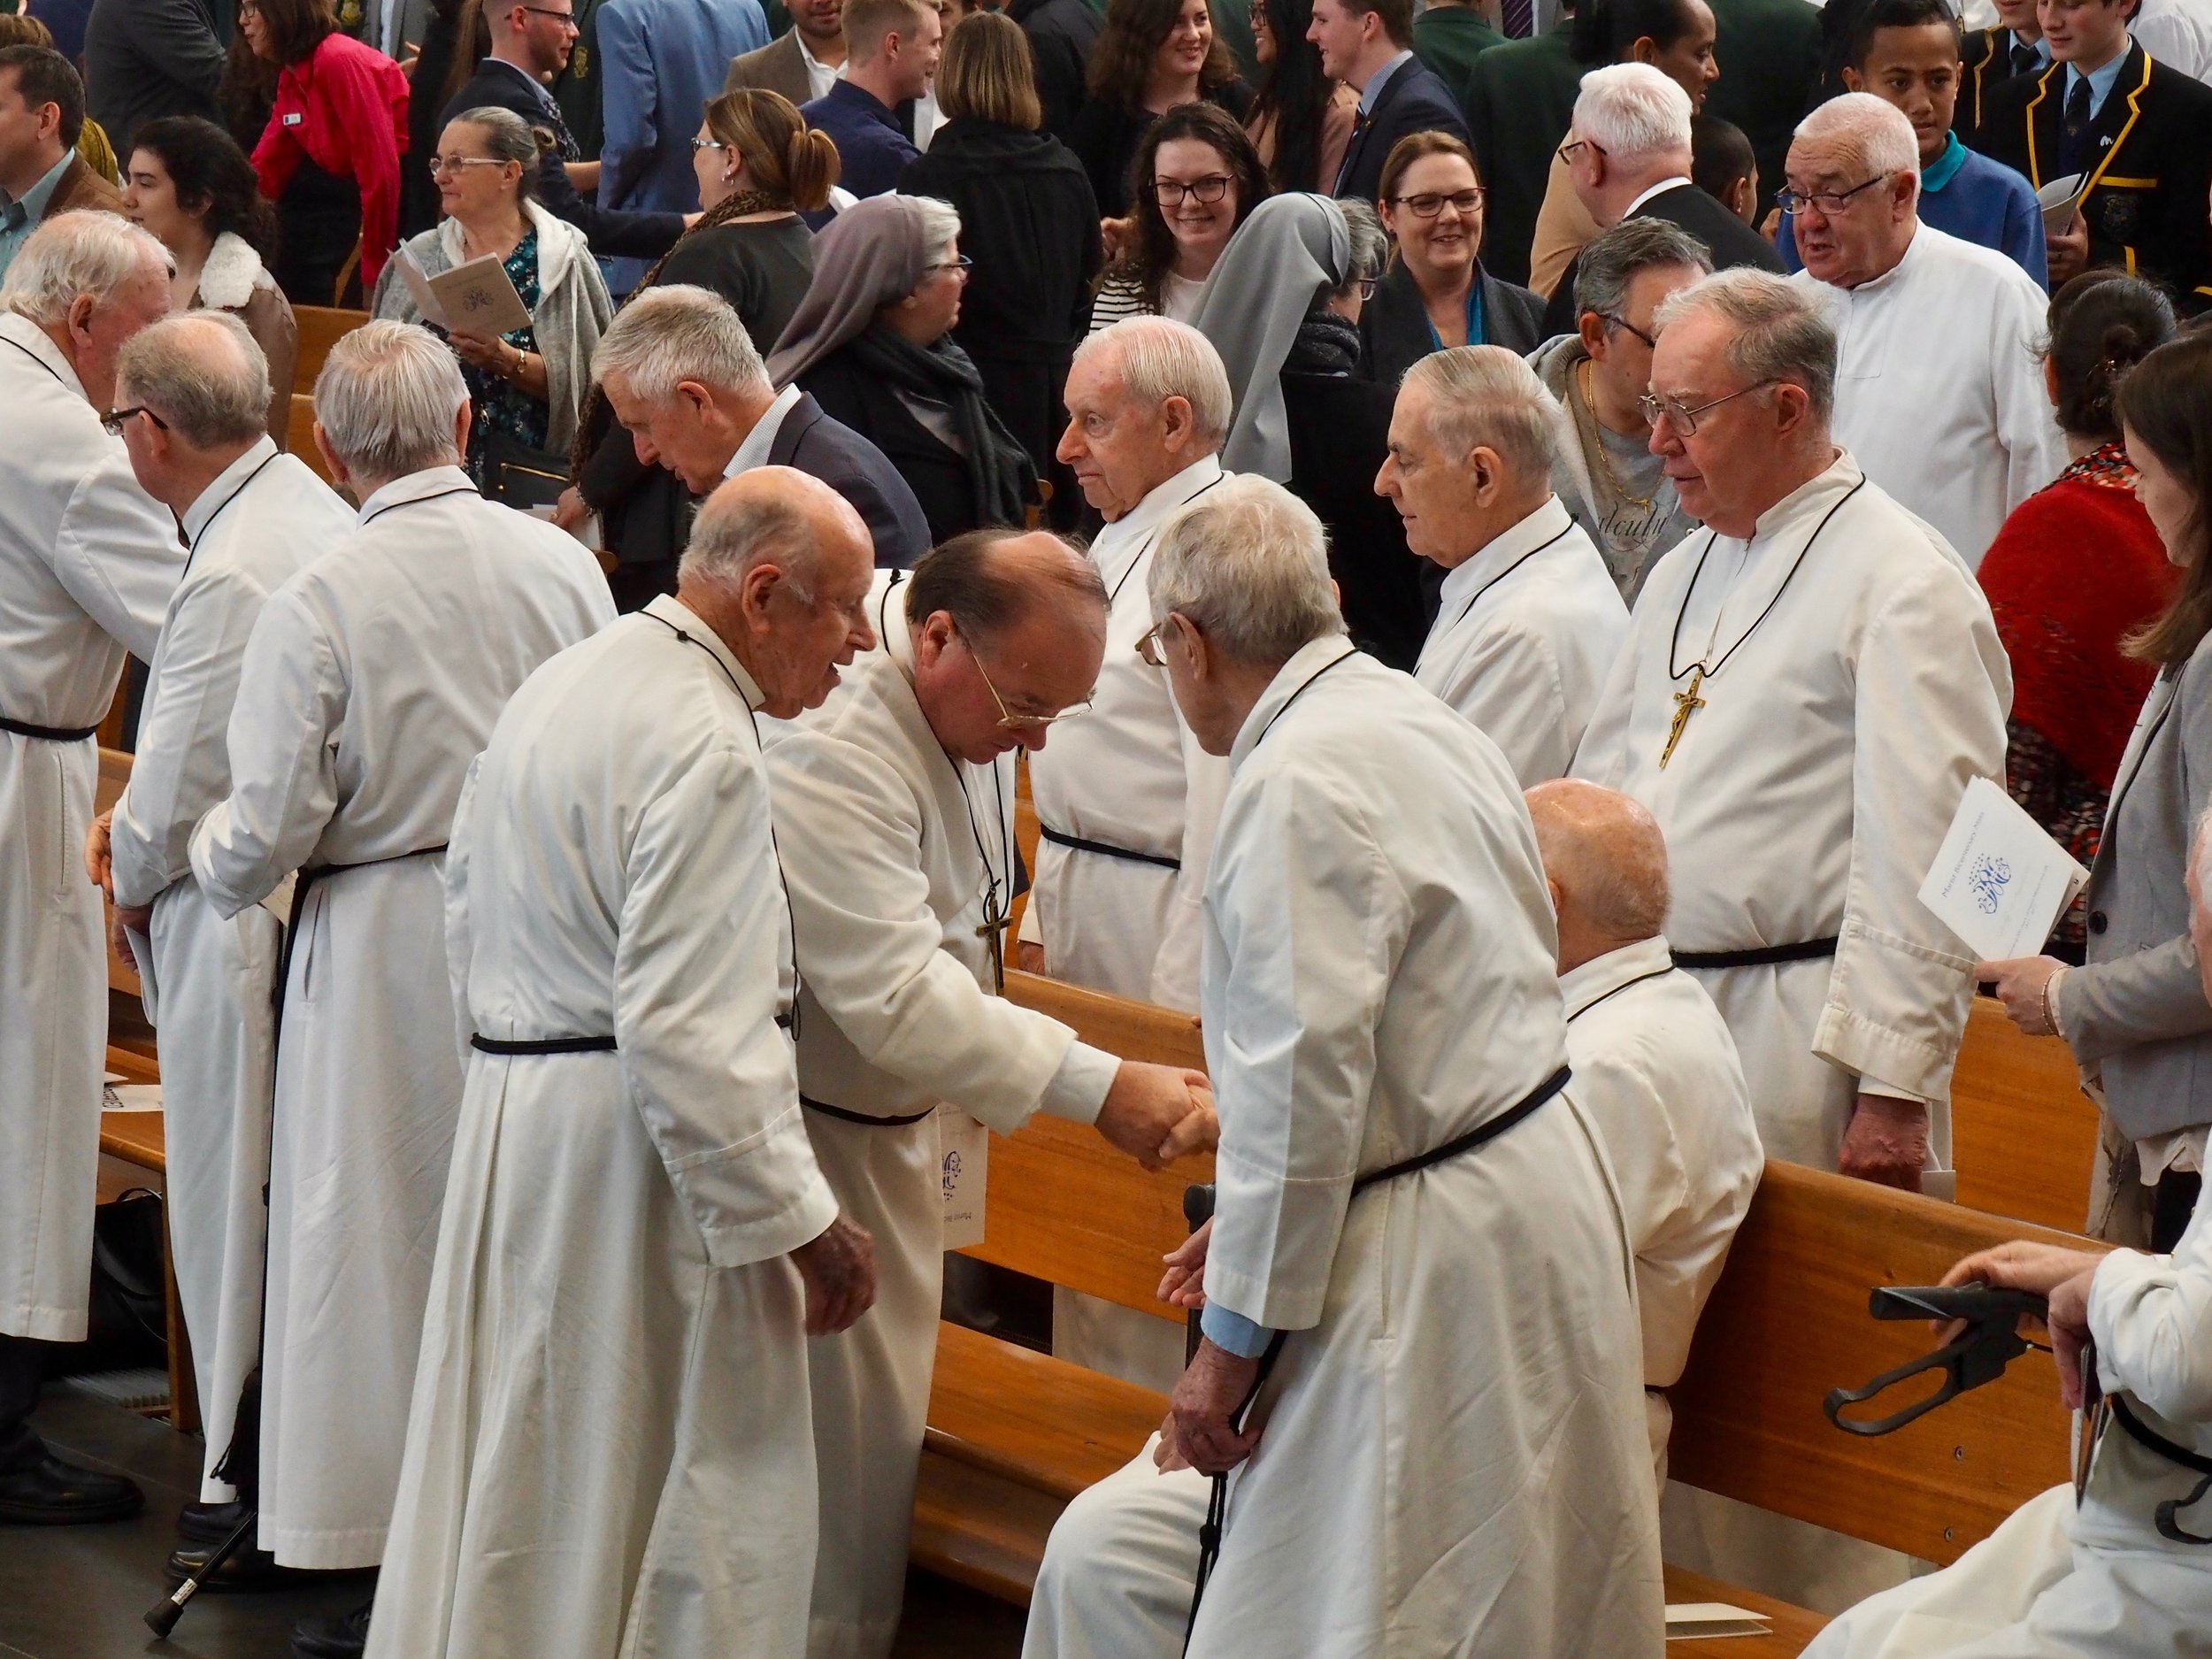 Bicentenary Mass Sydney 12 Aug 2017 Photos by Paul Harris 00049.jpg